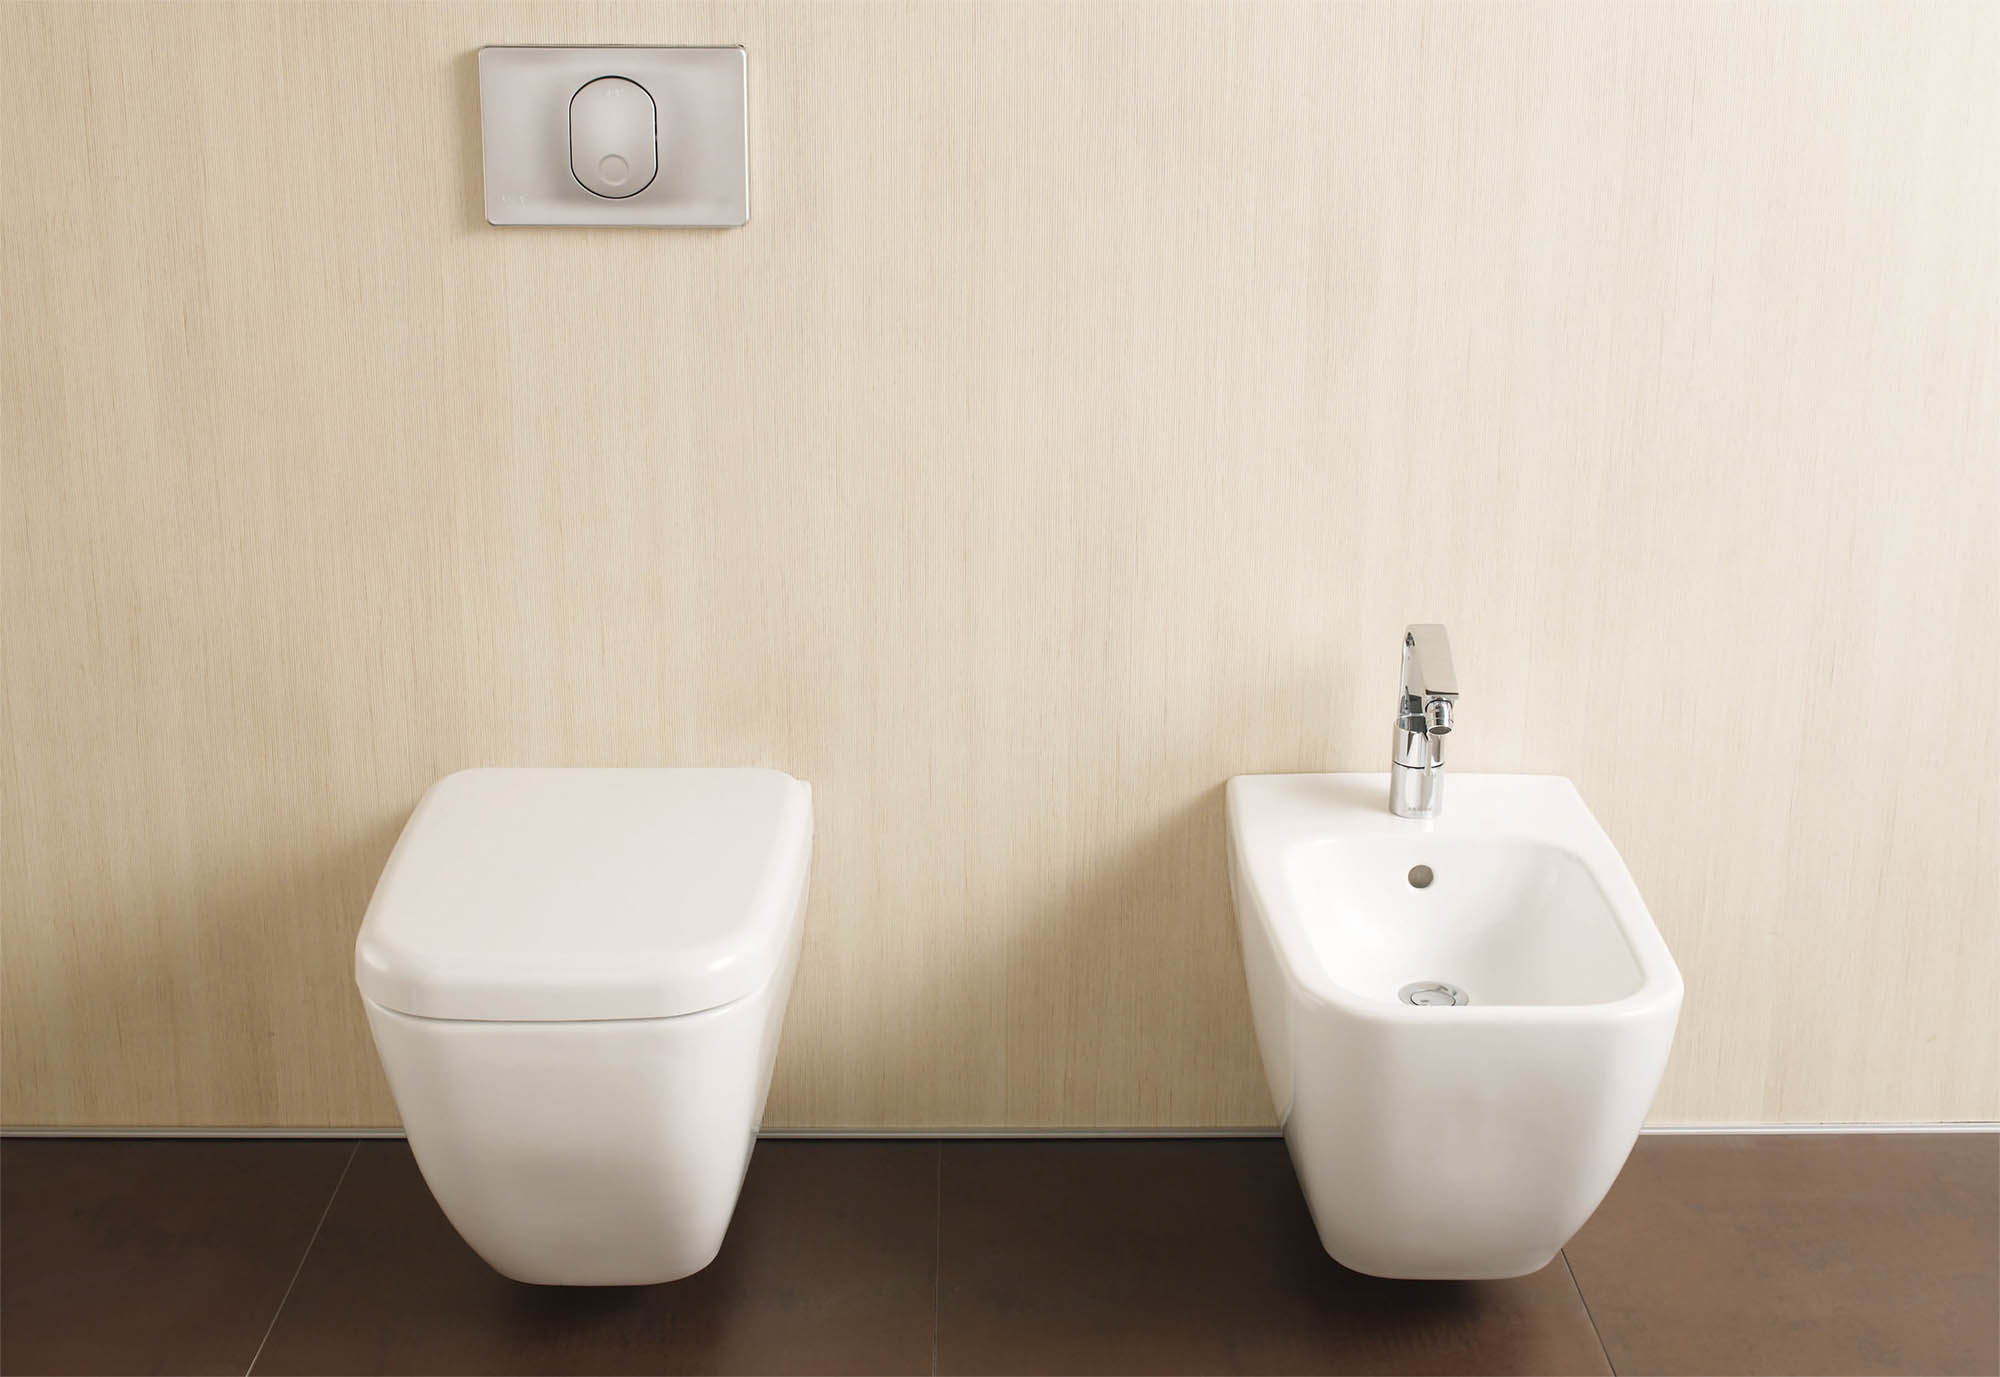 matching modern side by side toilet and bidet with electronic wall switch